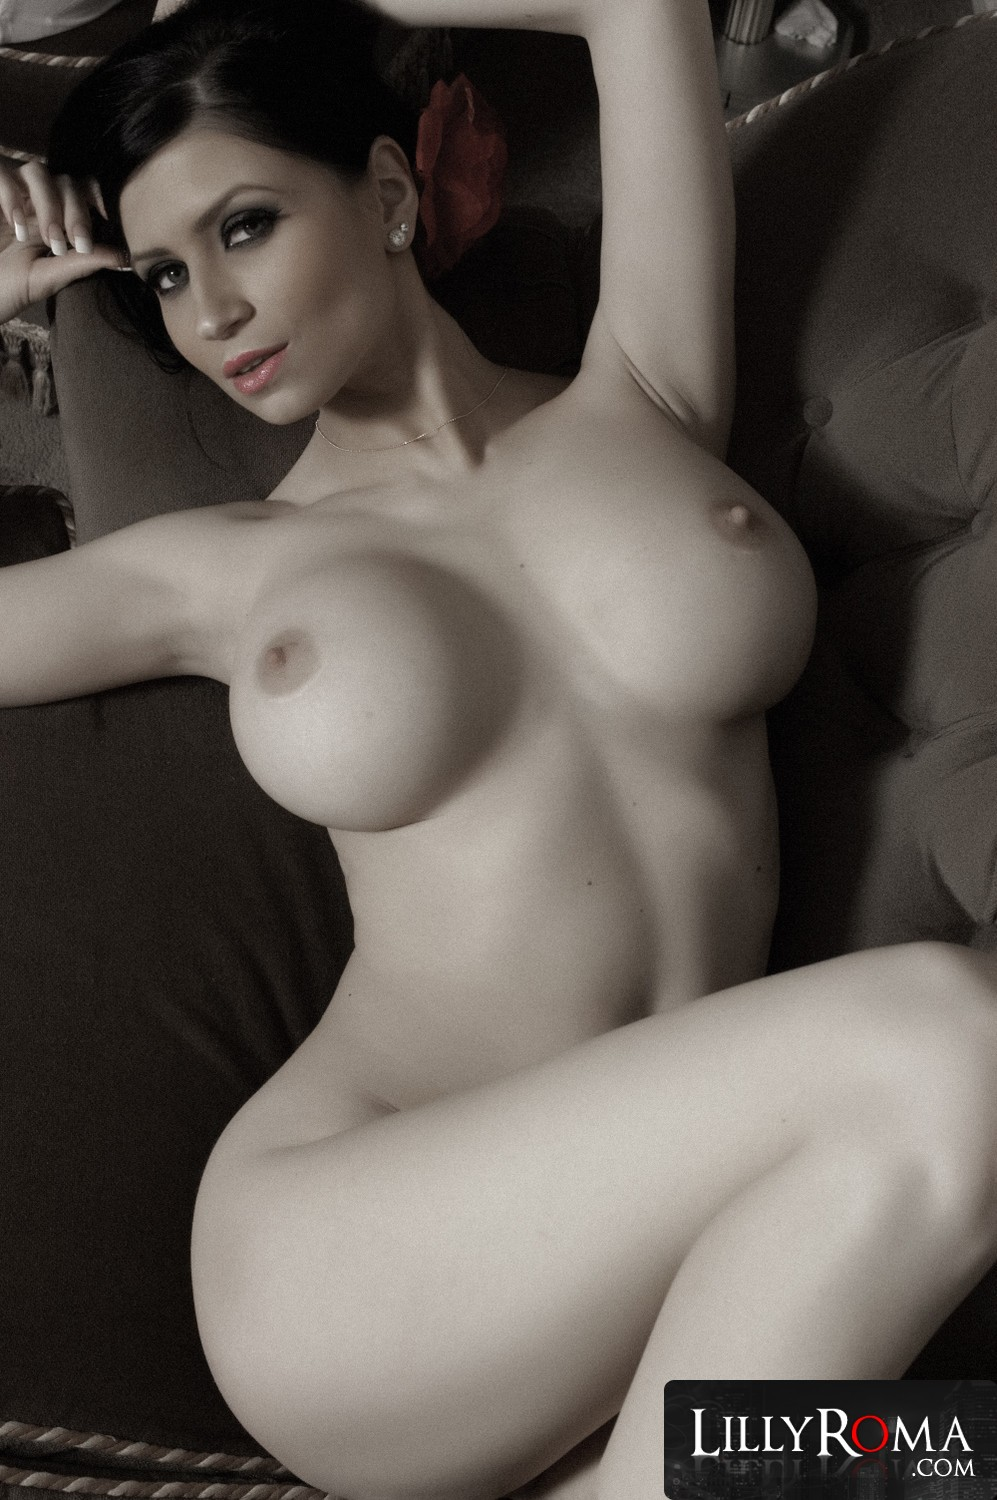 lilly roma nude